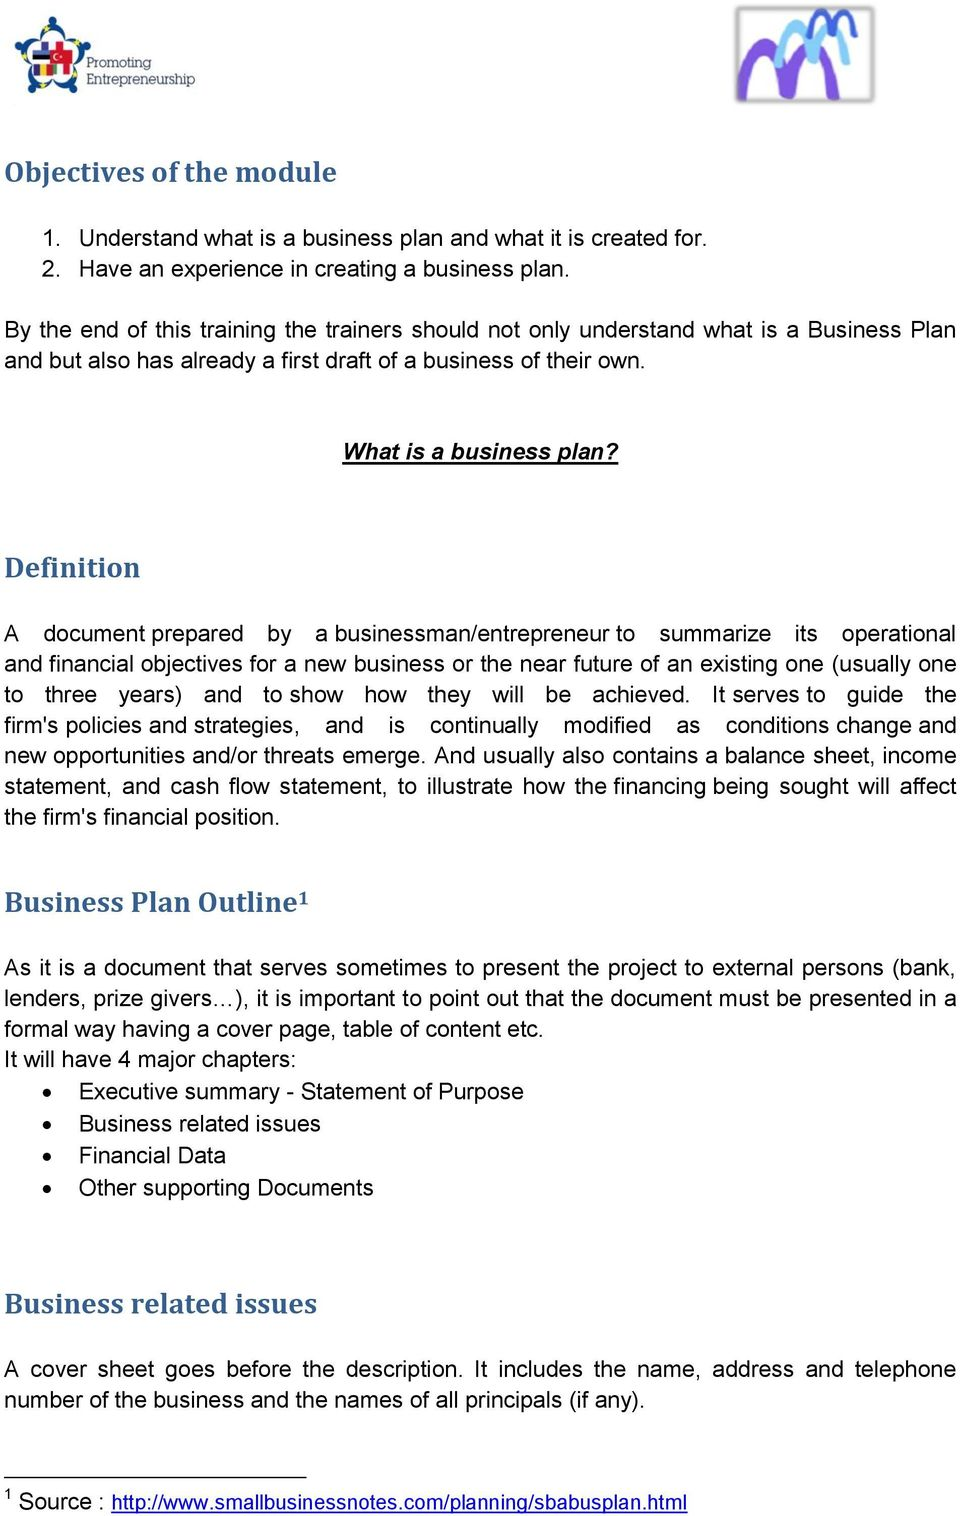 Business Plan For Small